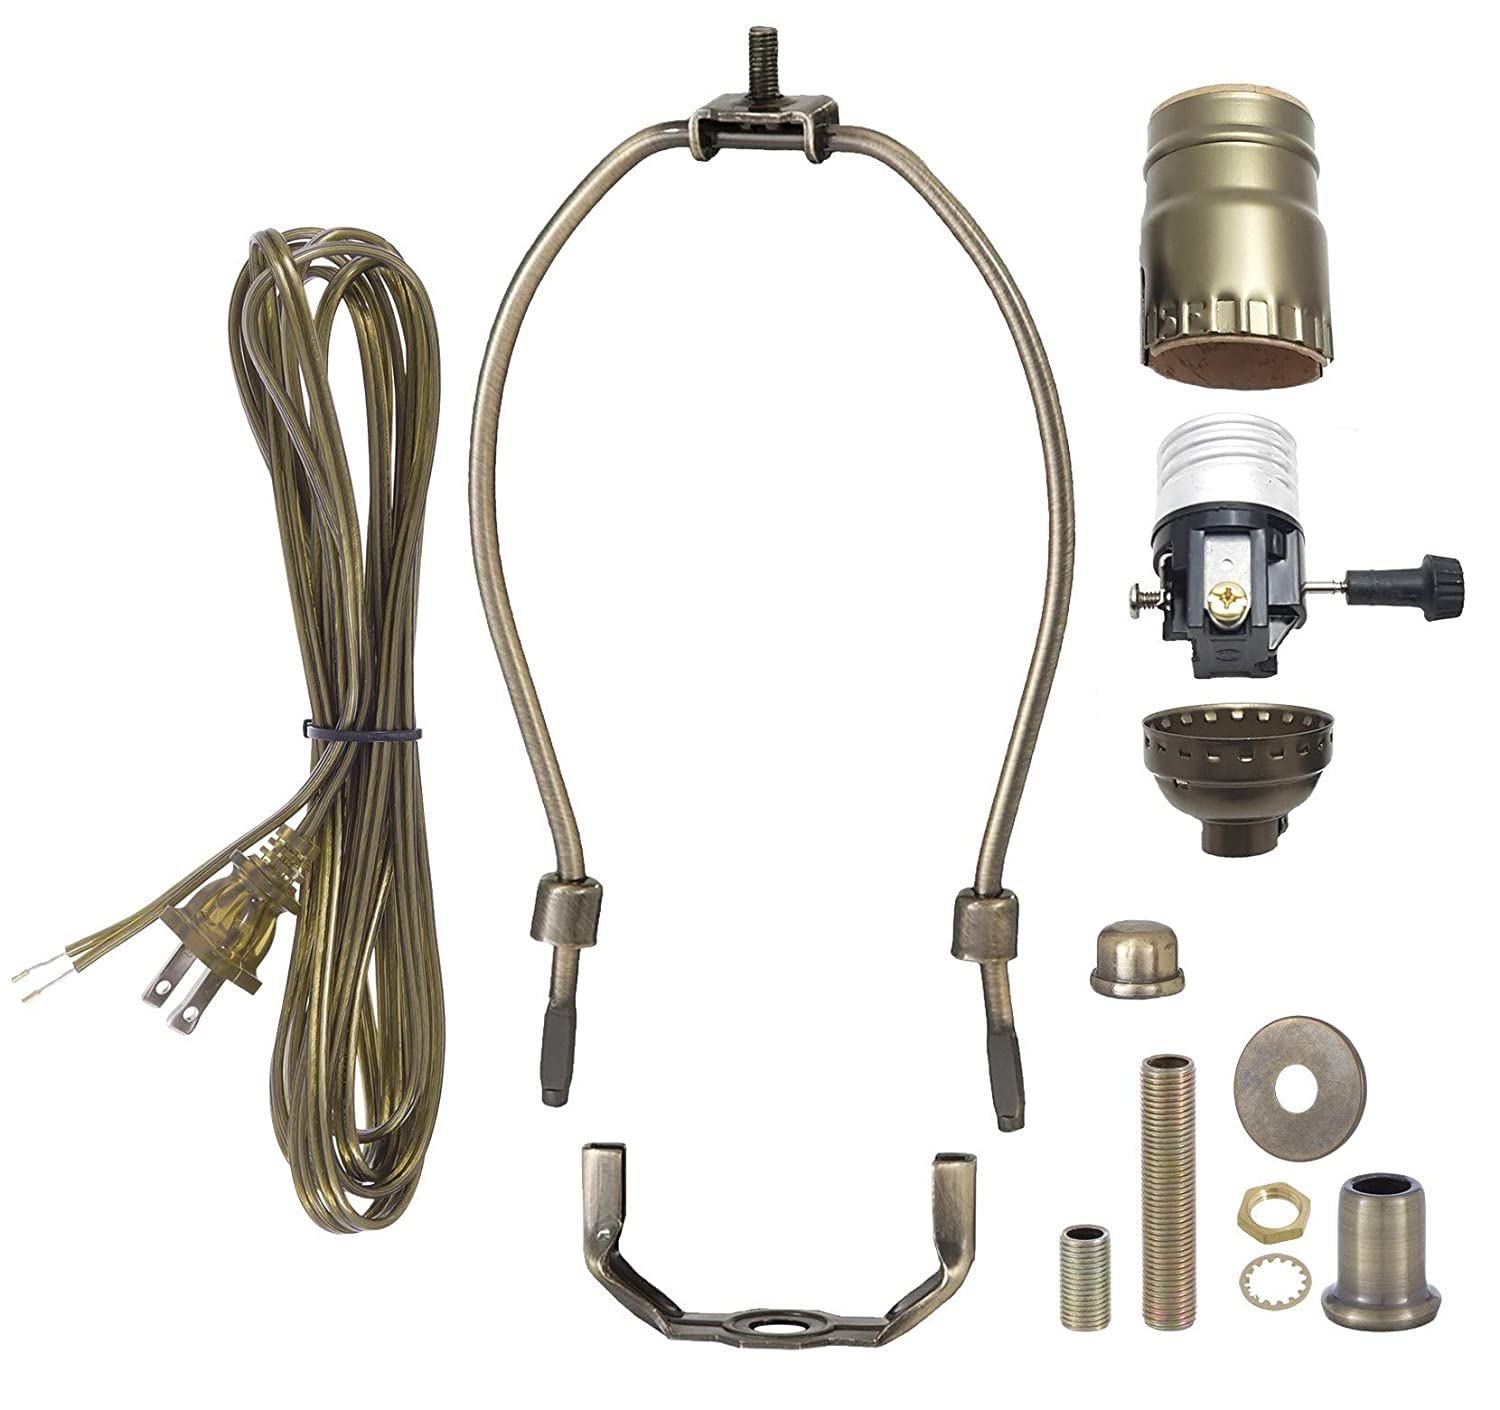 B&P Lamp Antique Brass Finish Table Lamp Wiring Kit With 9 Inch Harp, 3-Way Socket